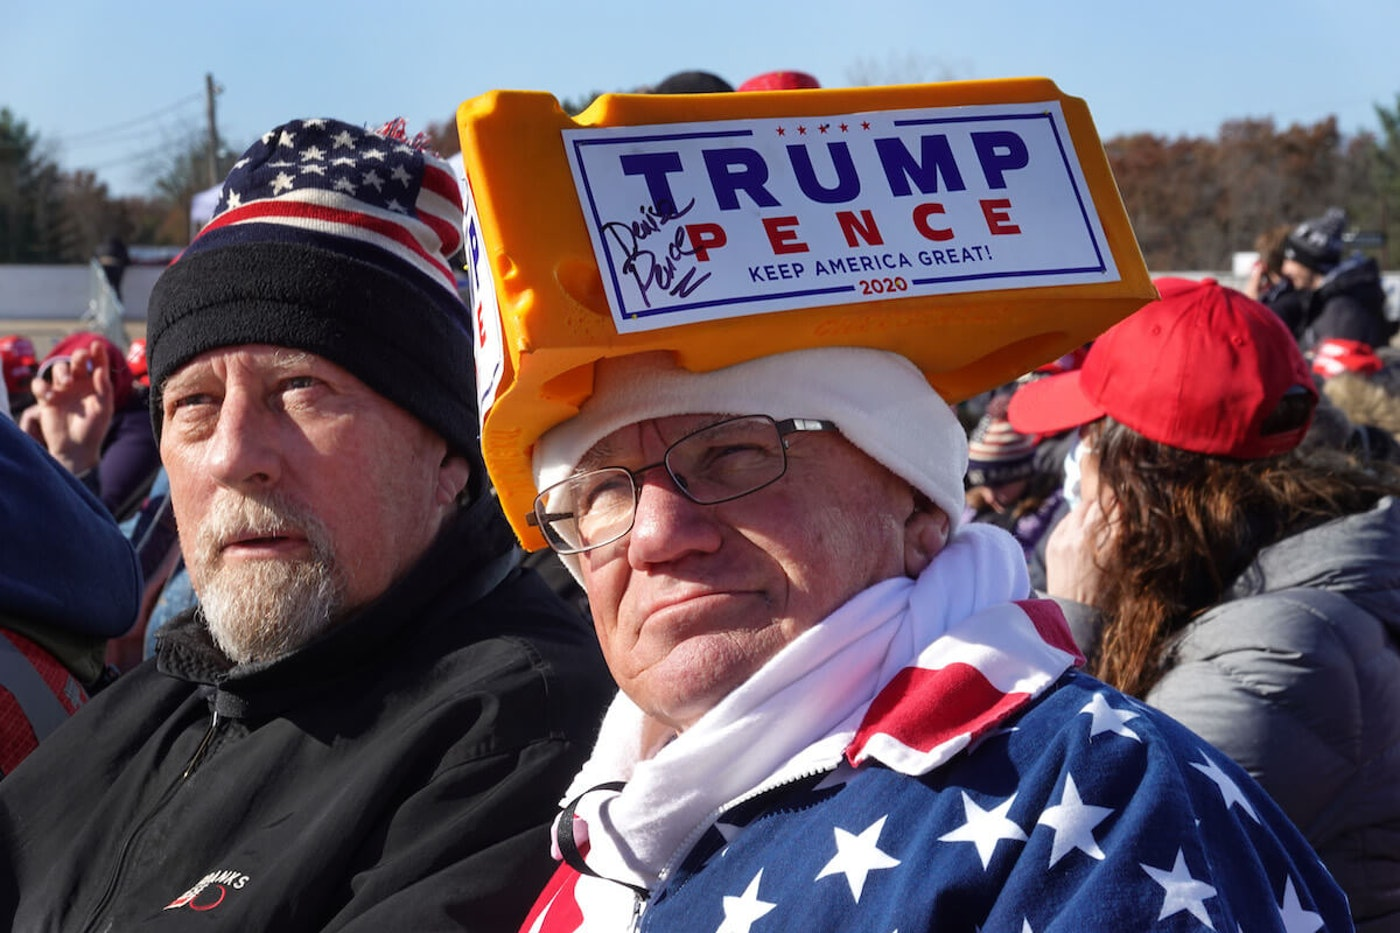 Supporters of President Donald Trump attend a campaign rally at the LaCrosse Fairgrounds Speedway on October 27, 2020 in West Salem, Wisconsin. A recent polling average has Trump trailing former vice president and Democratic presidential nominee Joe Biden by about 7 points in the state. (Photo by Scott Olson/Getty Images)